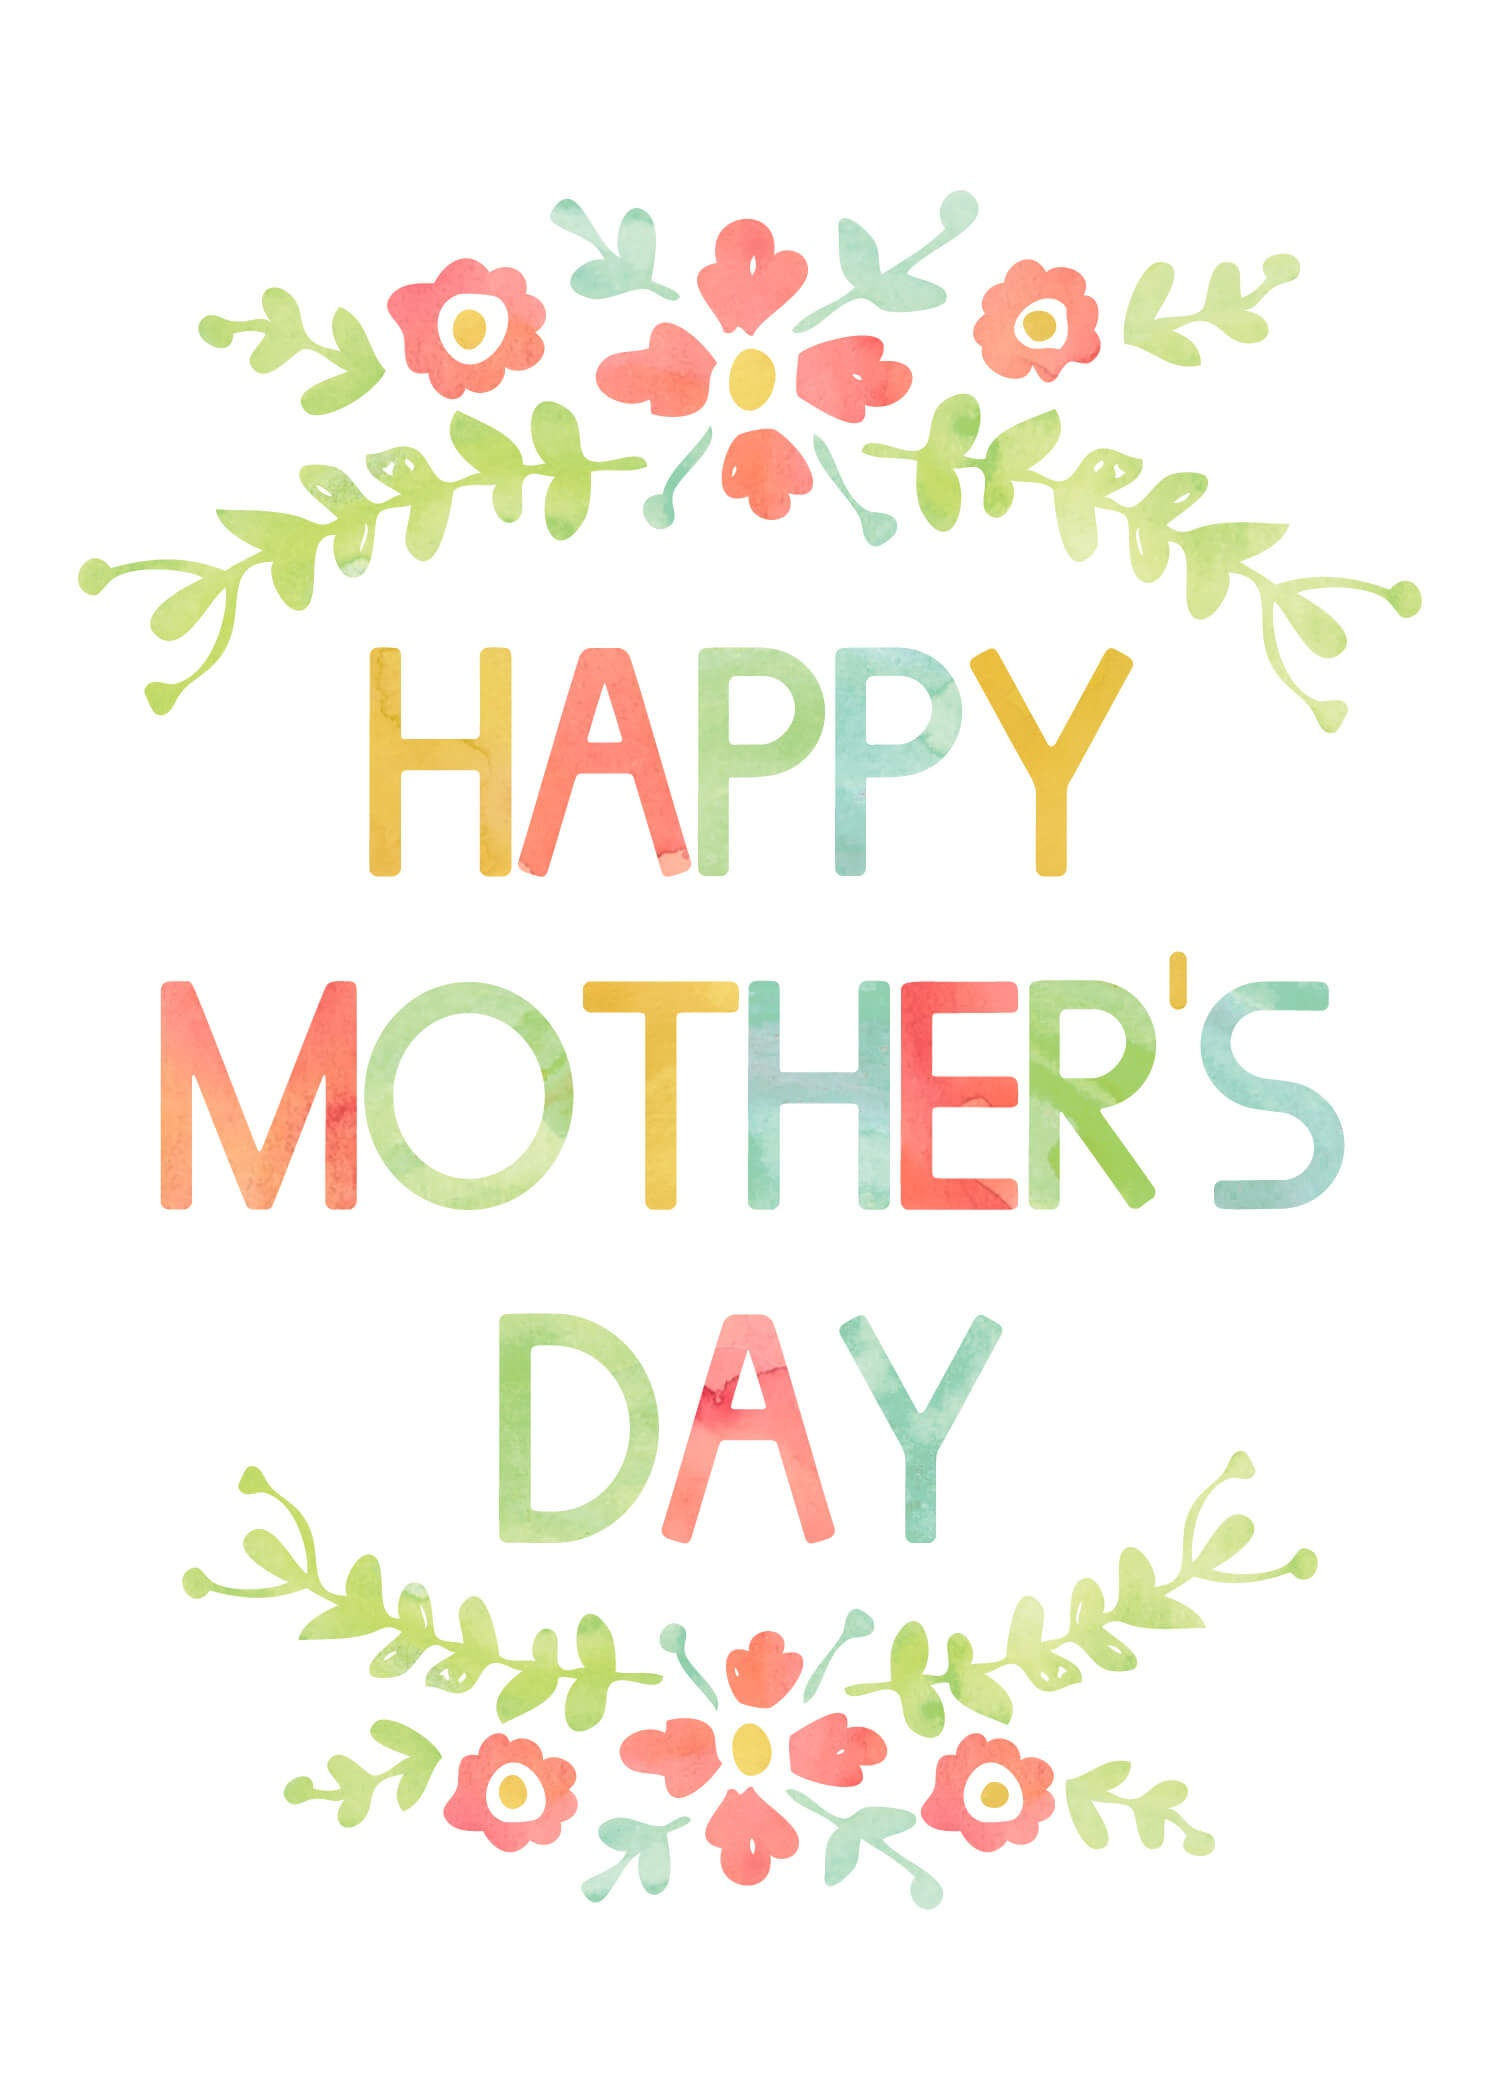 Mother's Day Card - Free Printable - Free Printable Mothers Day Cards